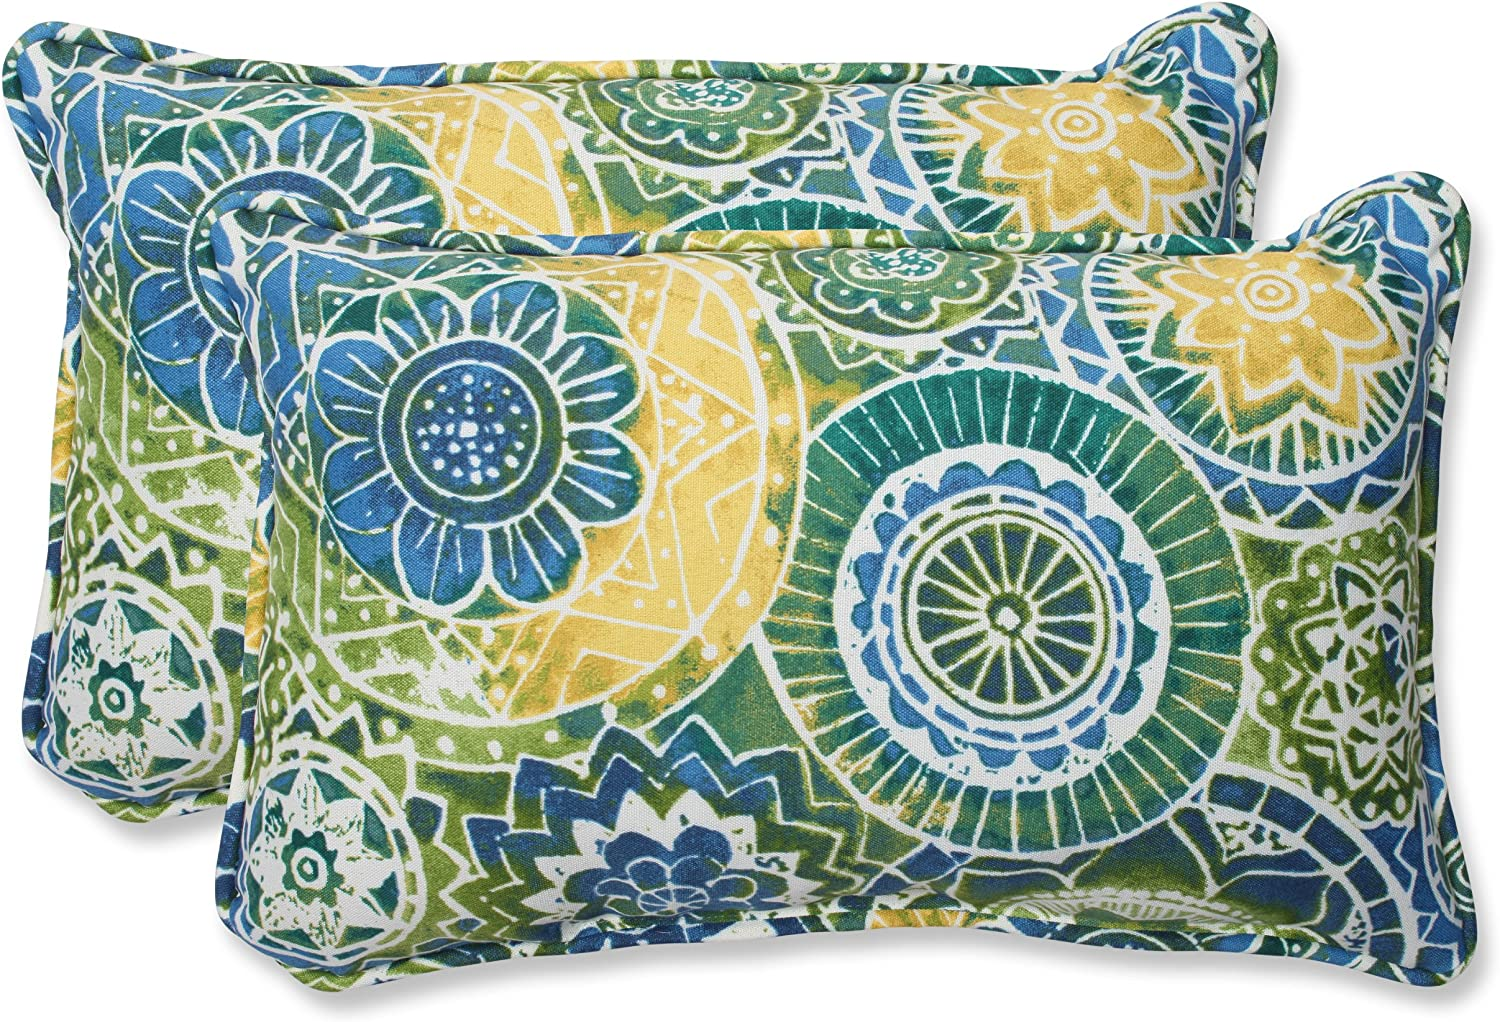 Pillow Perfect Rectangular Throw Pillow, Omnia Lagoon, Set of 2